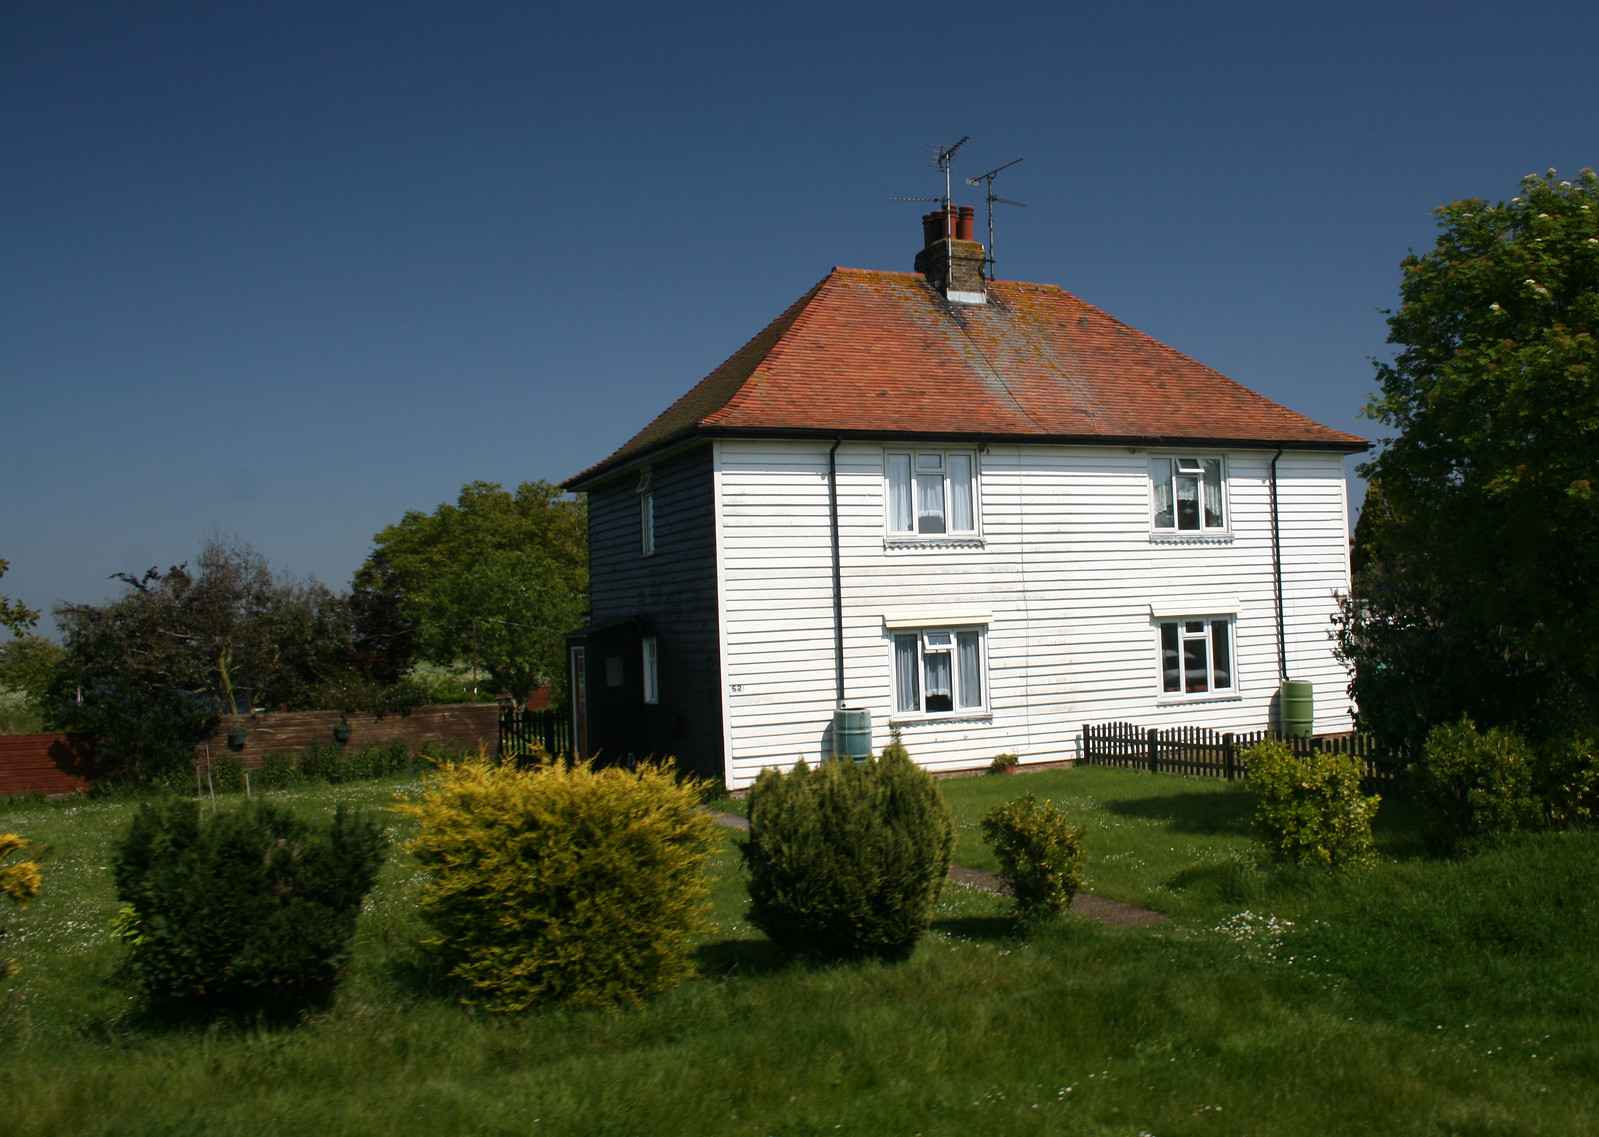 Houses on Foulness Island